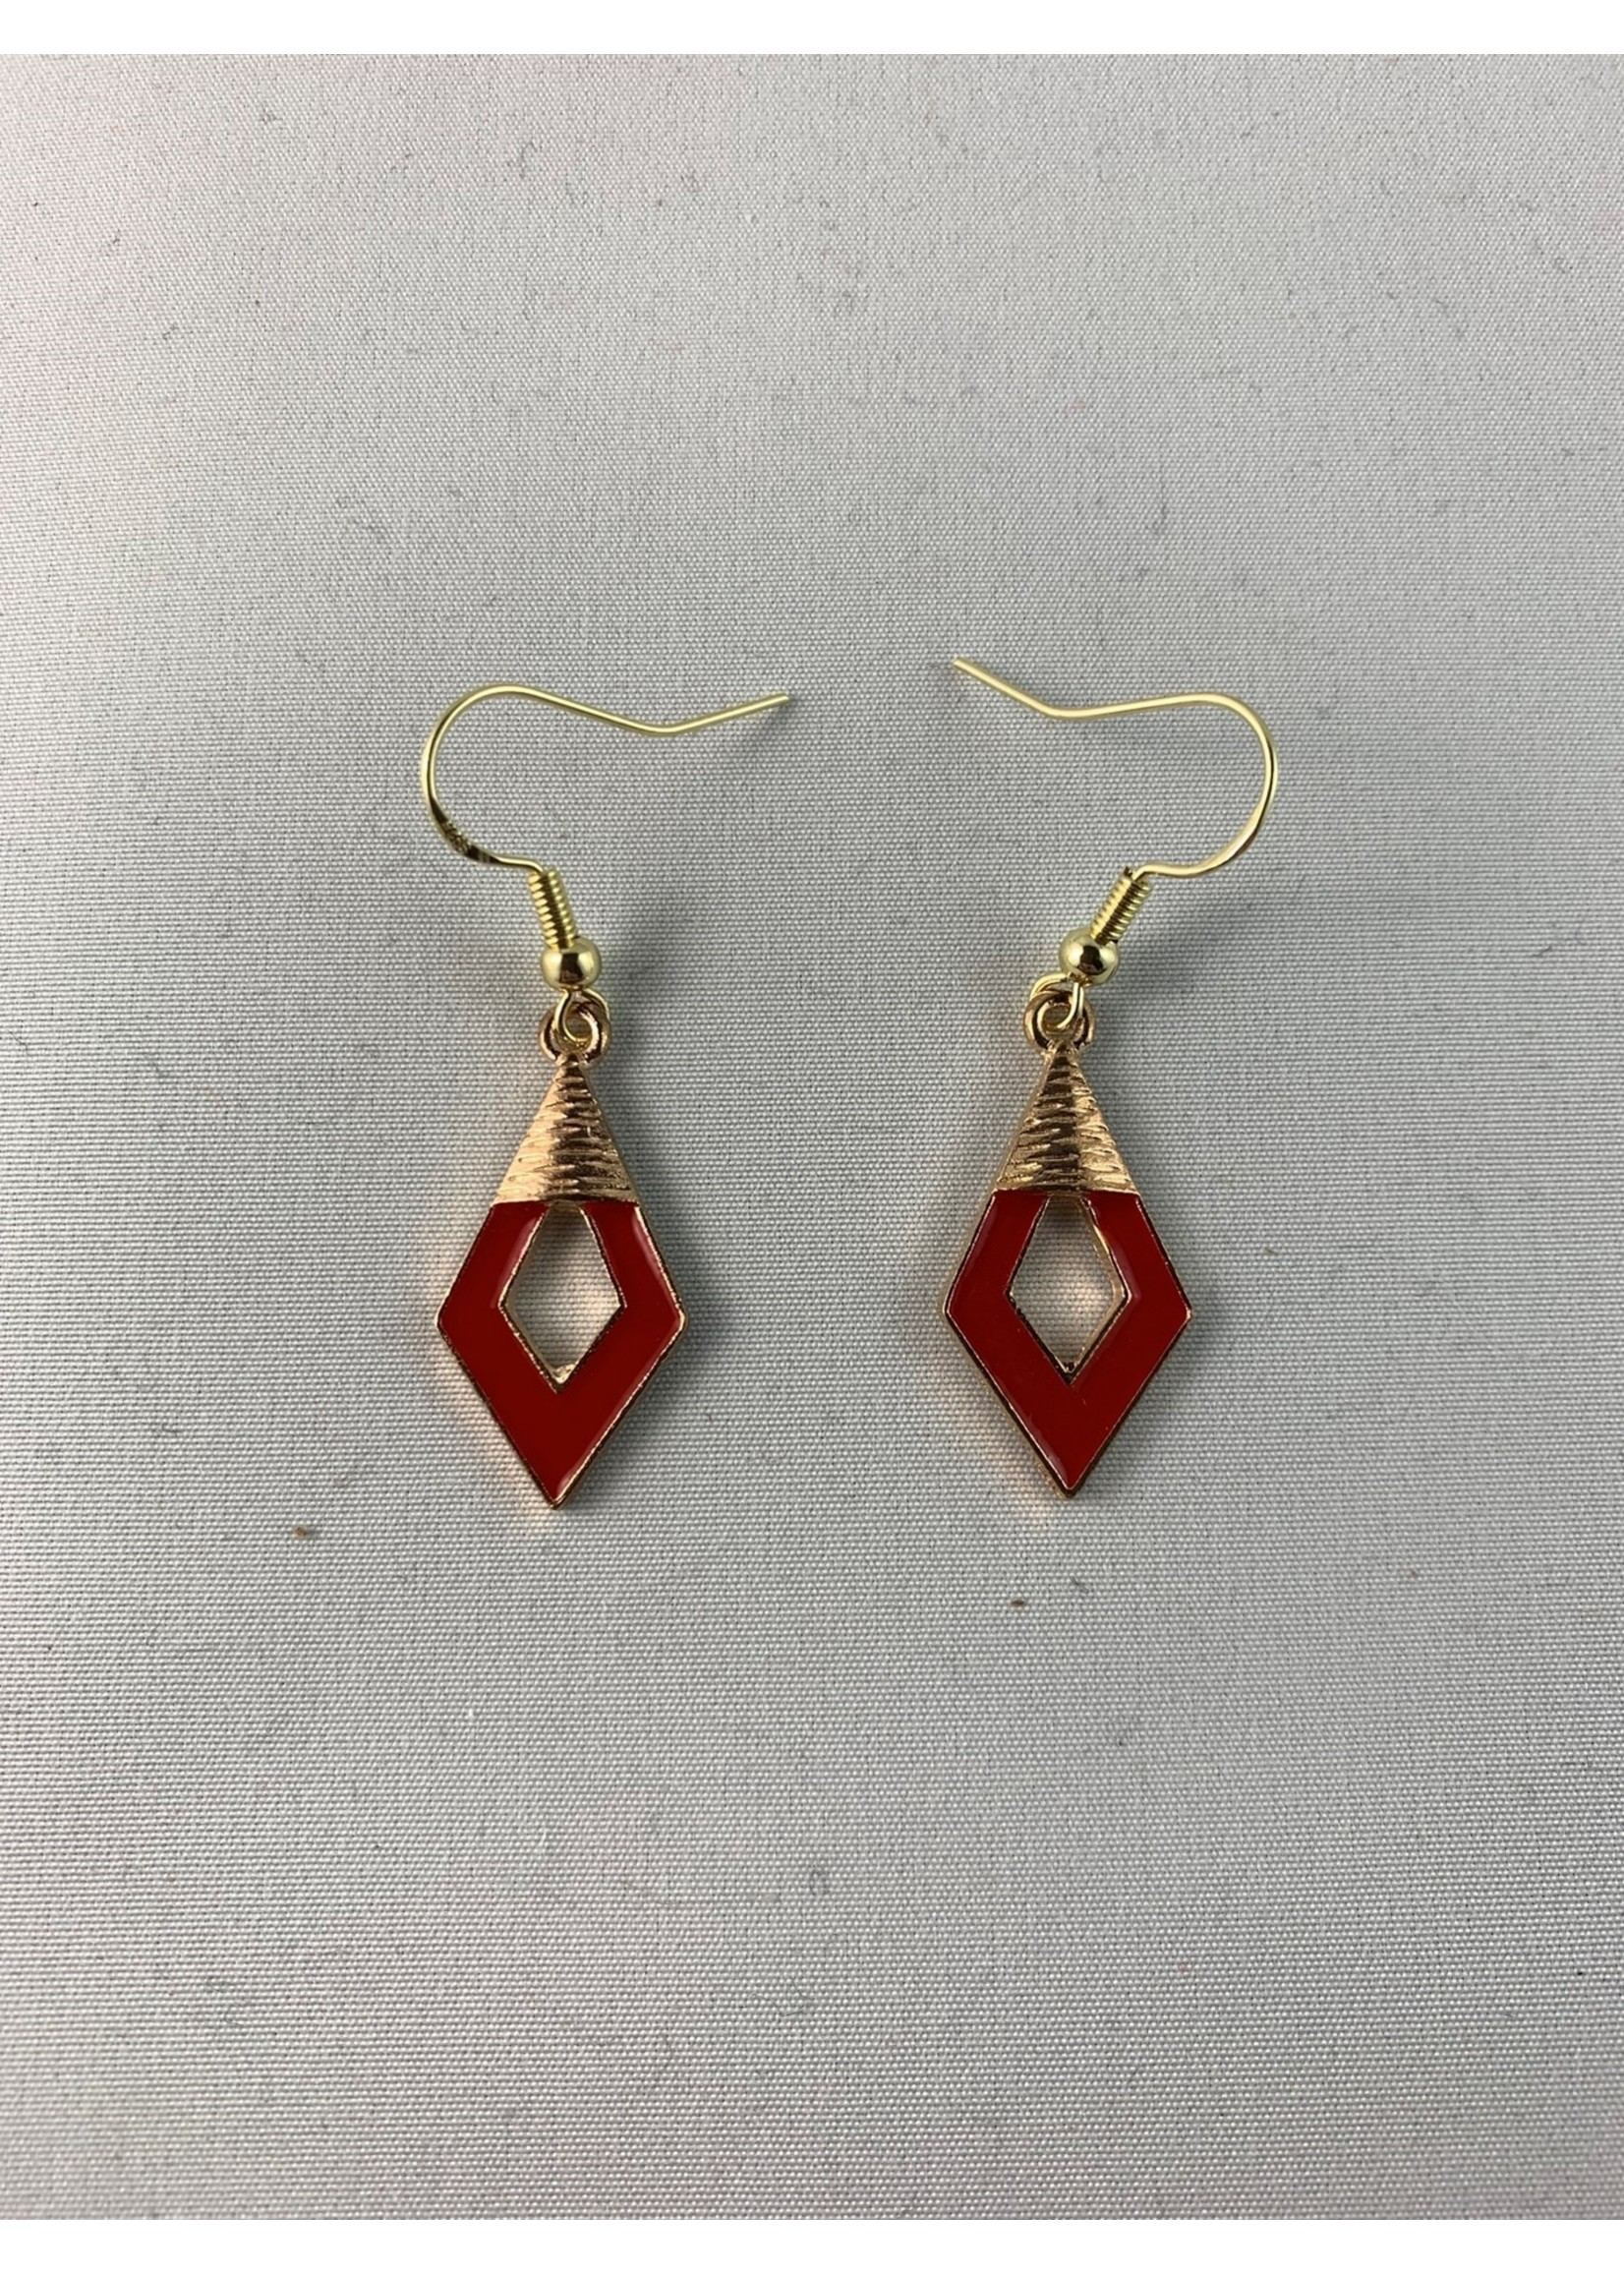 Earrings Red and Gold Diamond